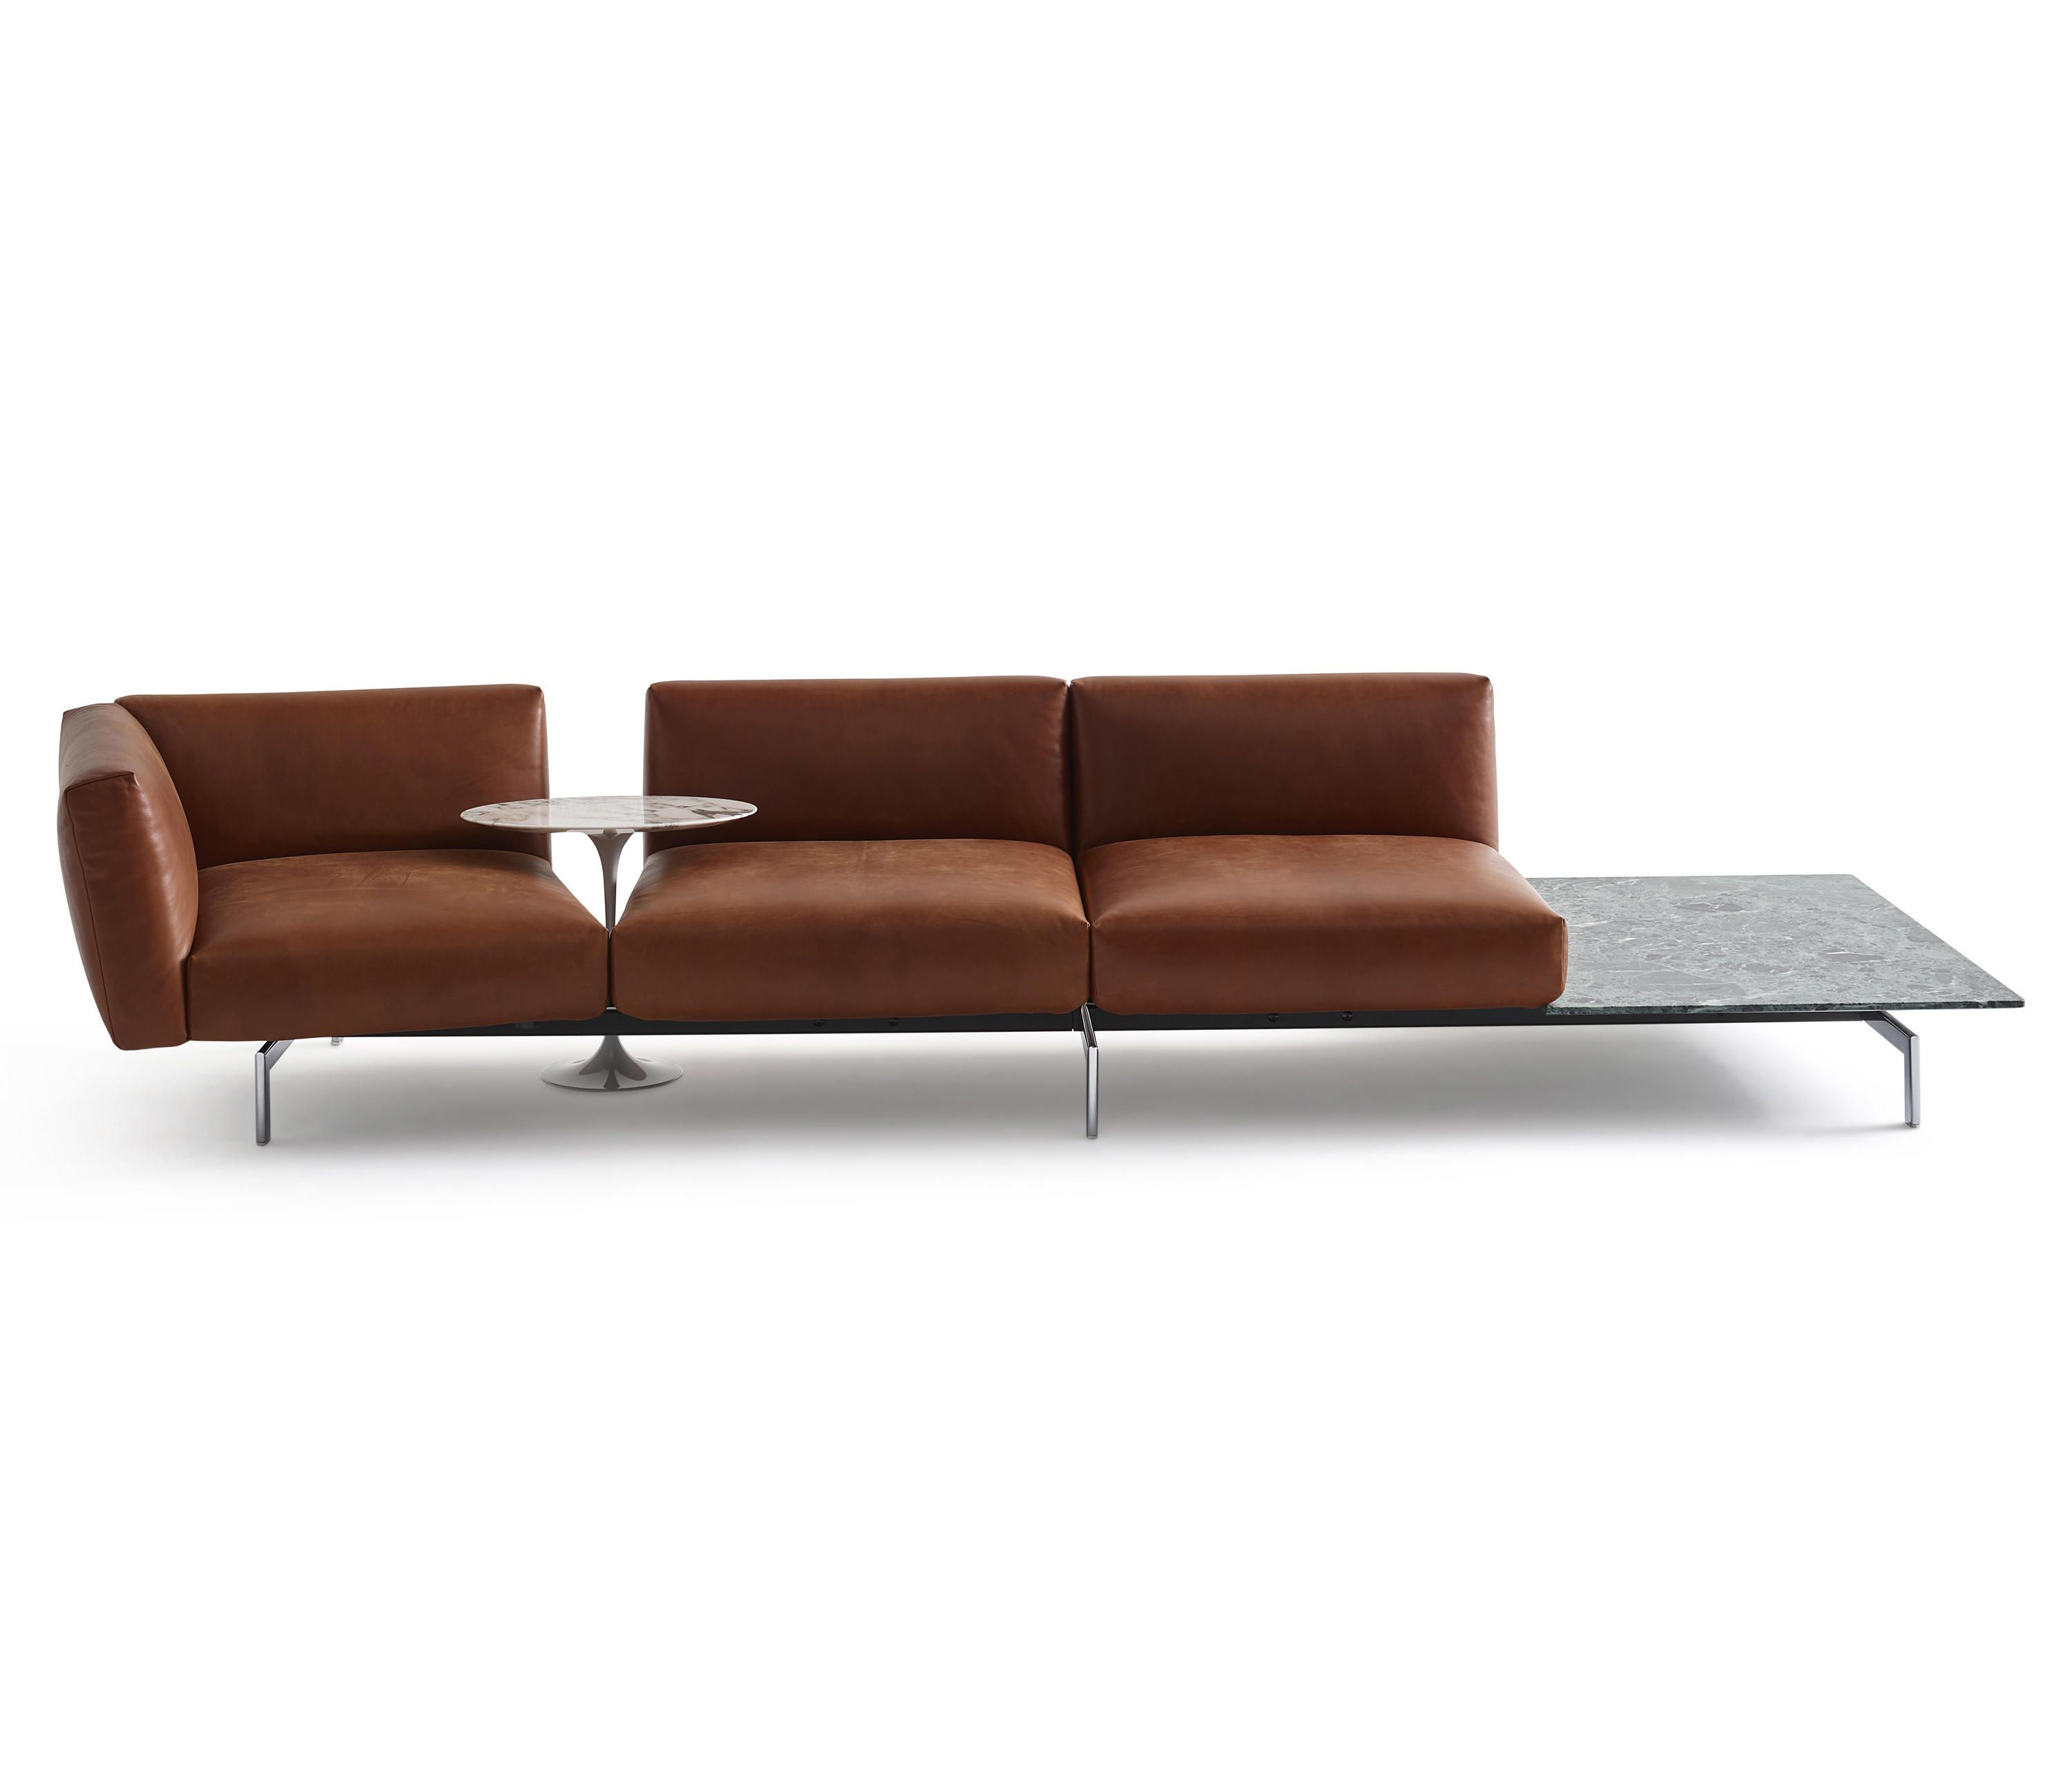 Lissoni Avio Sofa System Designer Lounge Sofas From Knoll International All Information High Resolution Images Cads Catal Sofa Knoll Sofa Modern Sofa